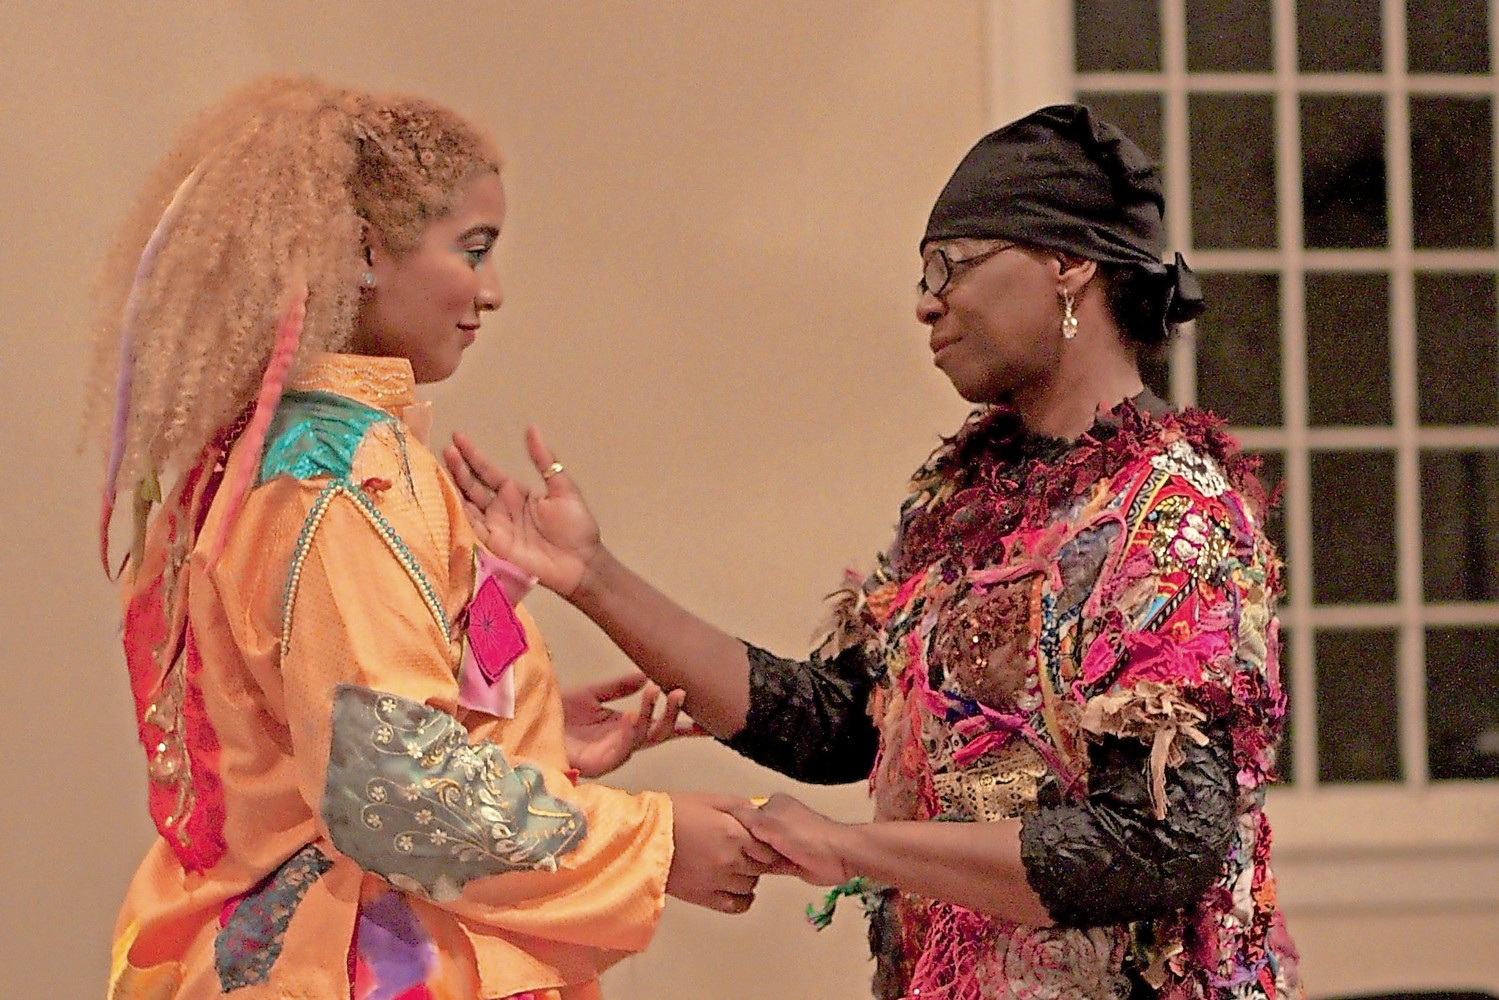 Lien Barboza, left, who plays Gingerella, rehearsed a powerful scene with Alicia Evans, who portrays her mother.